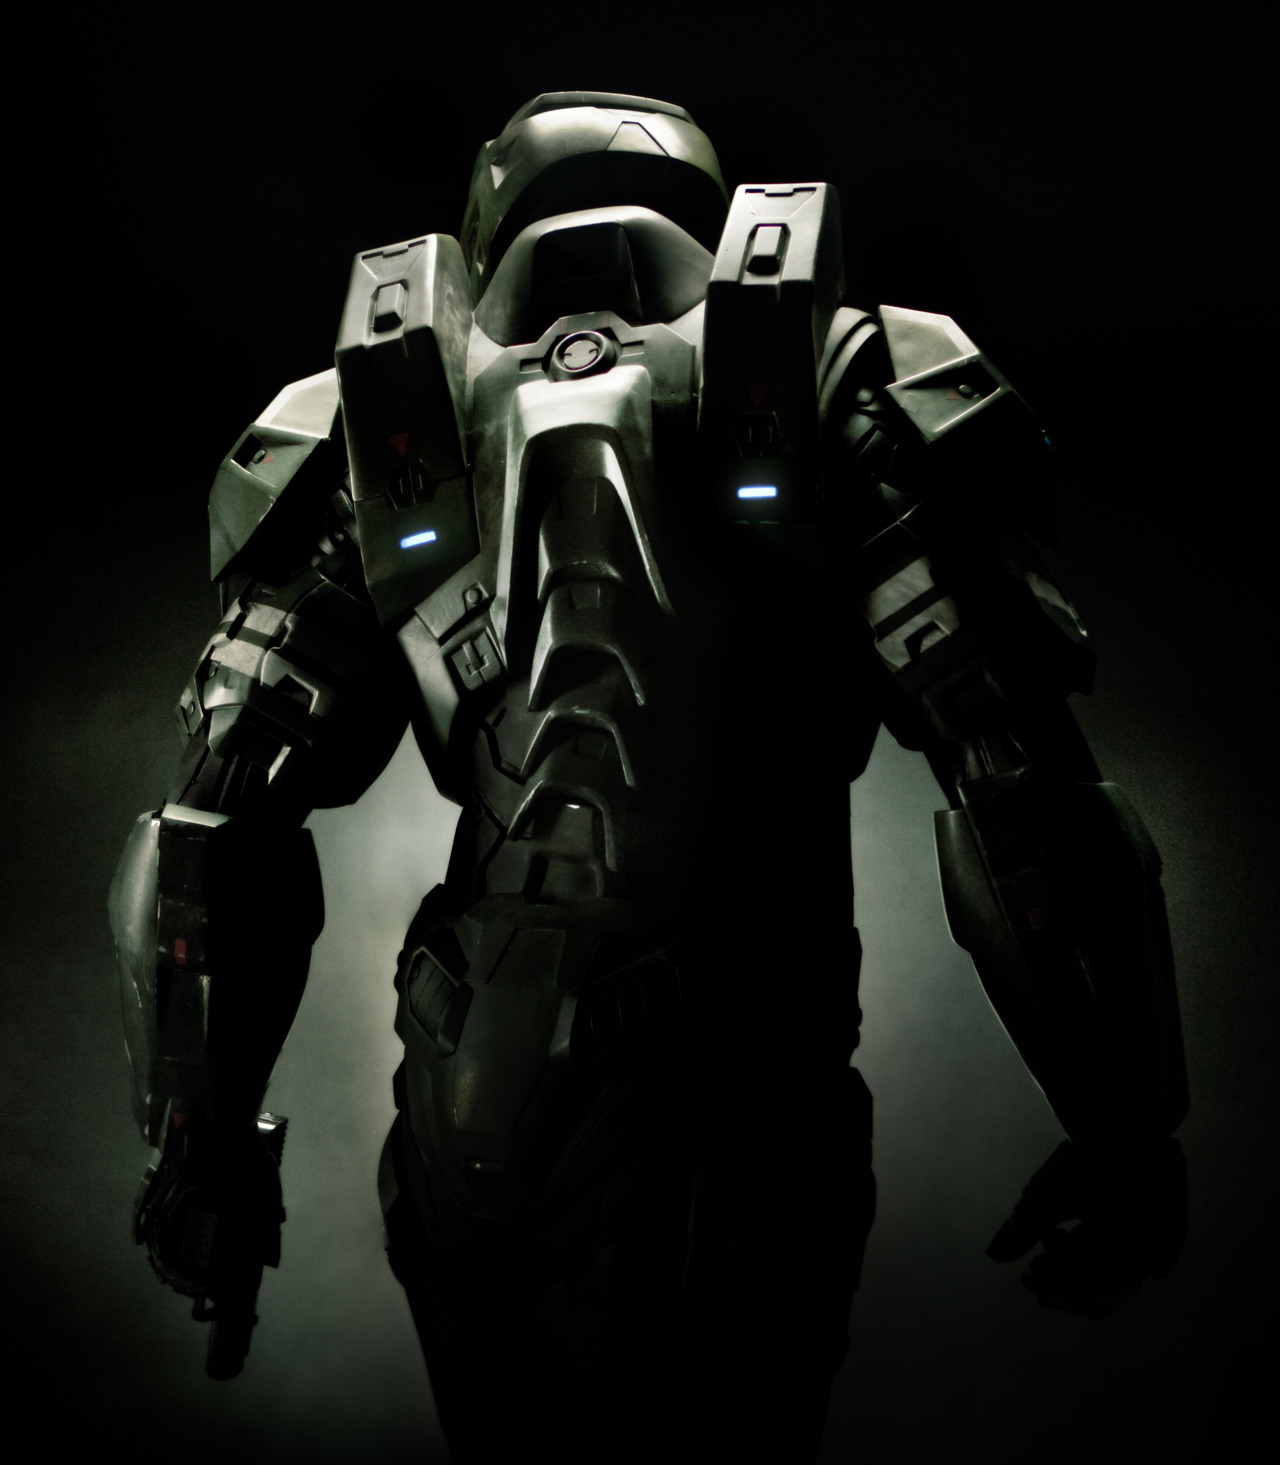 Halo 4 live-action series.